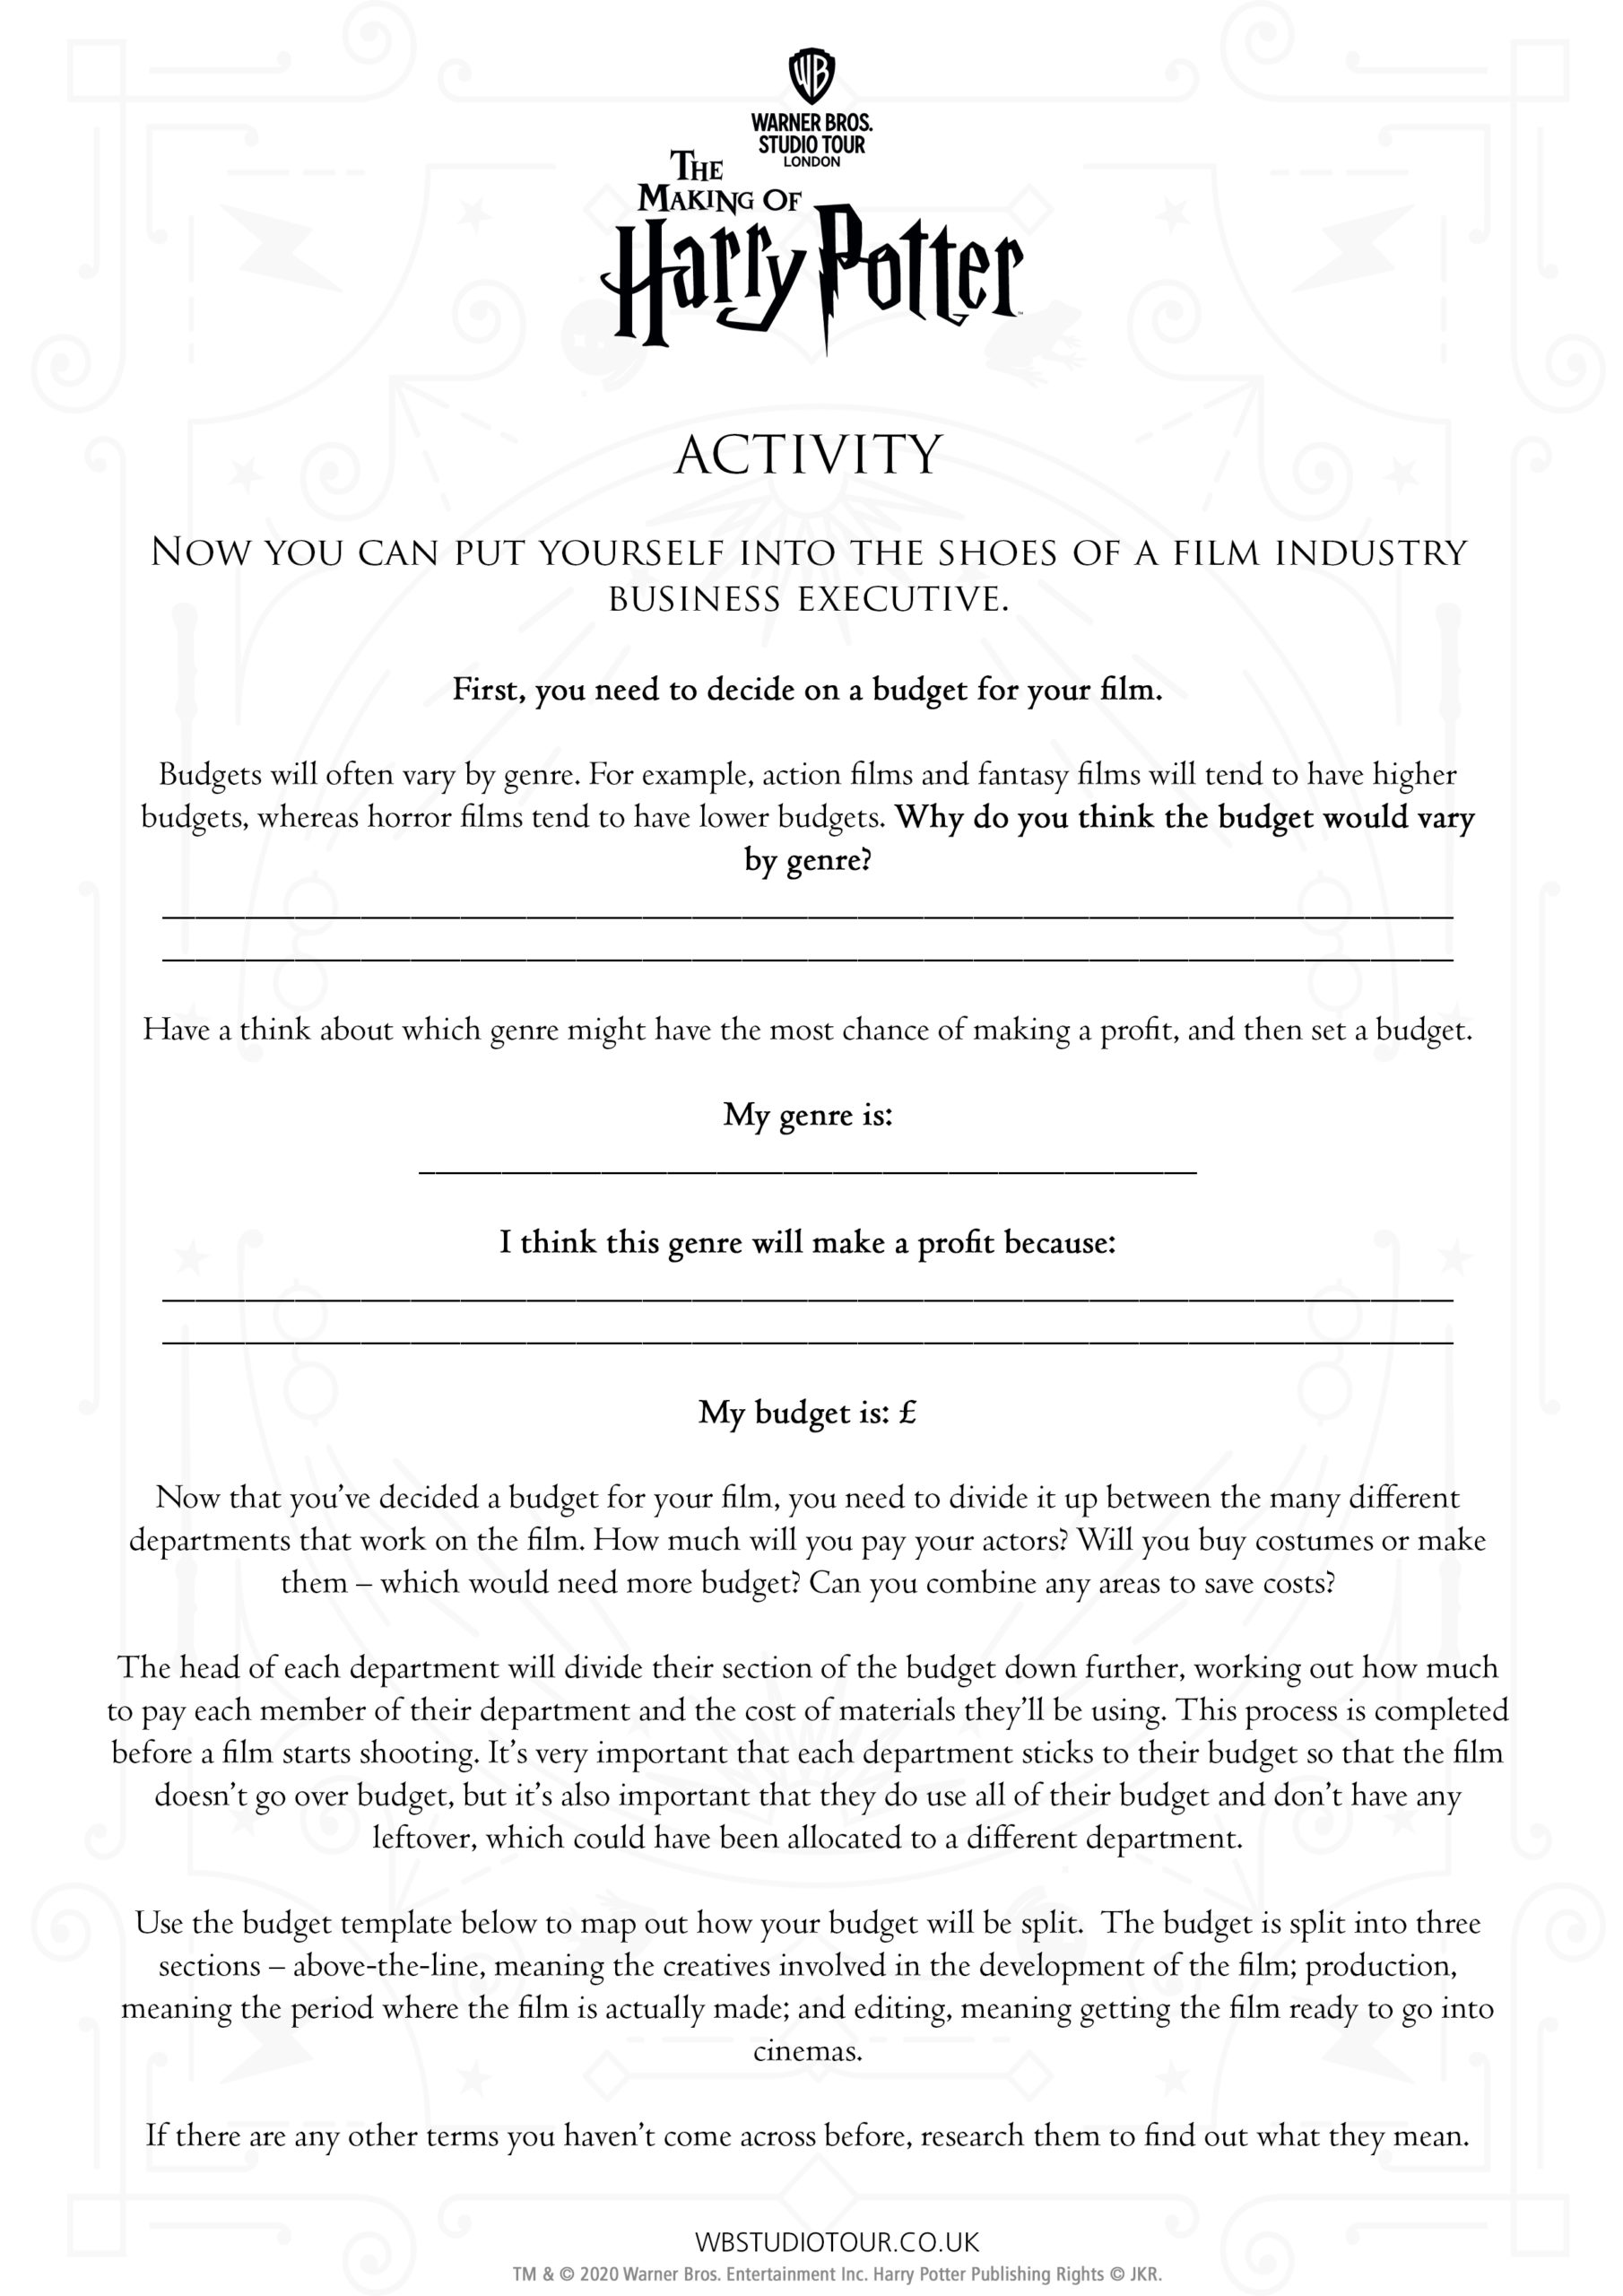 Movie Business activity worksheets page 2 - Studio Tour at Home